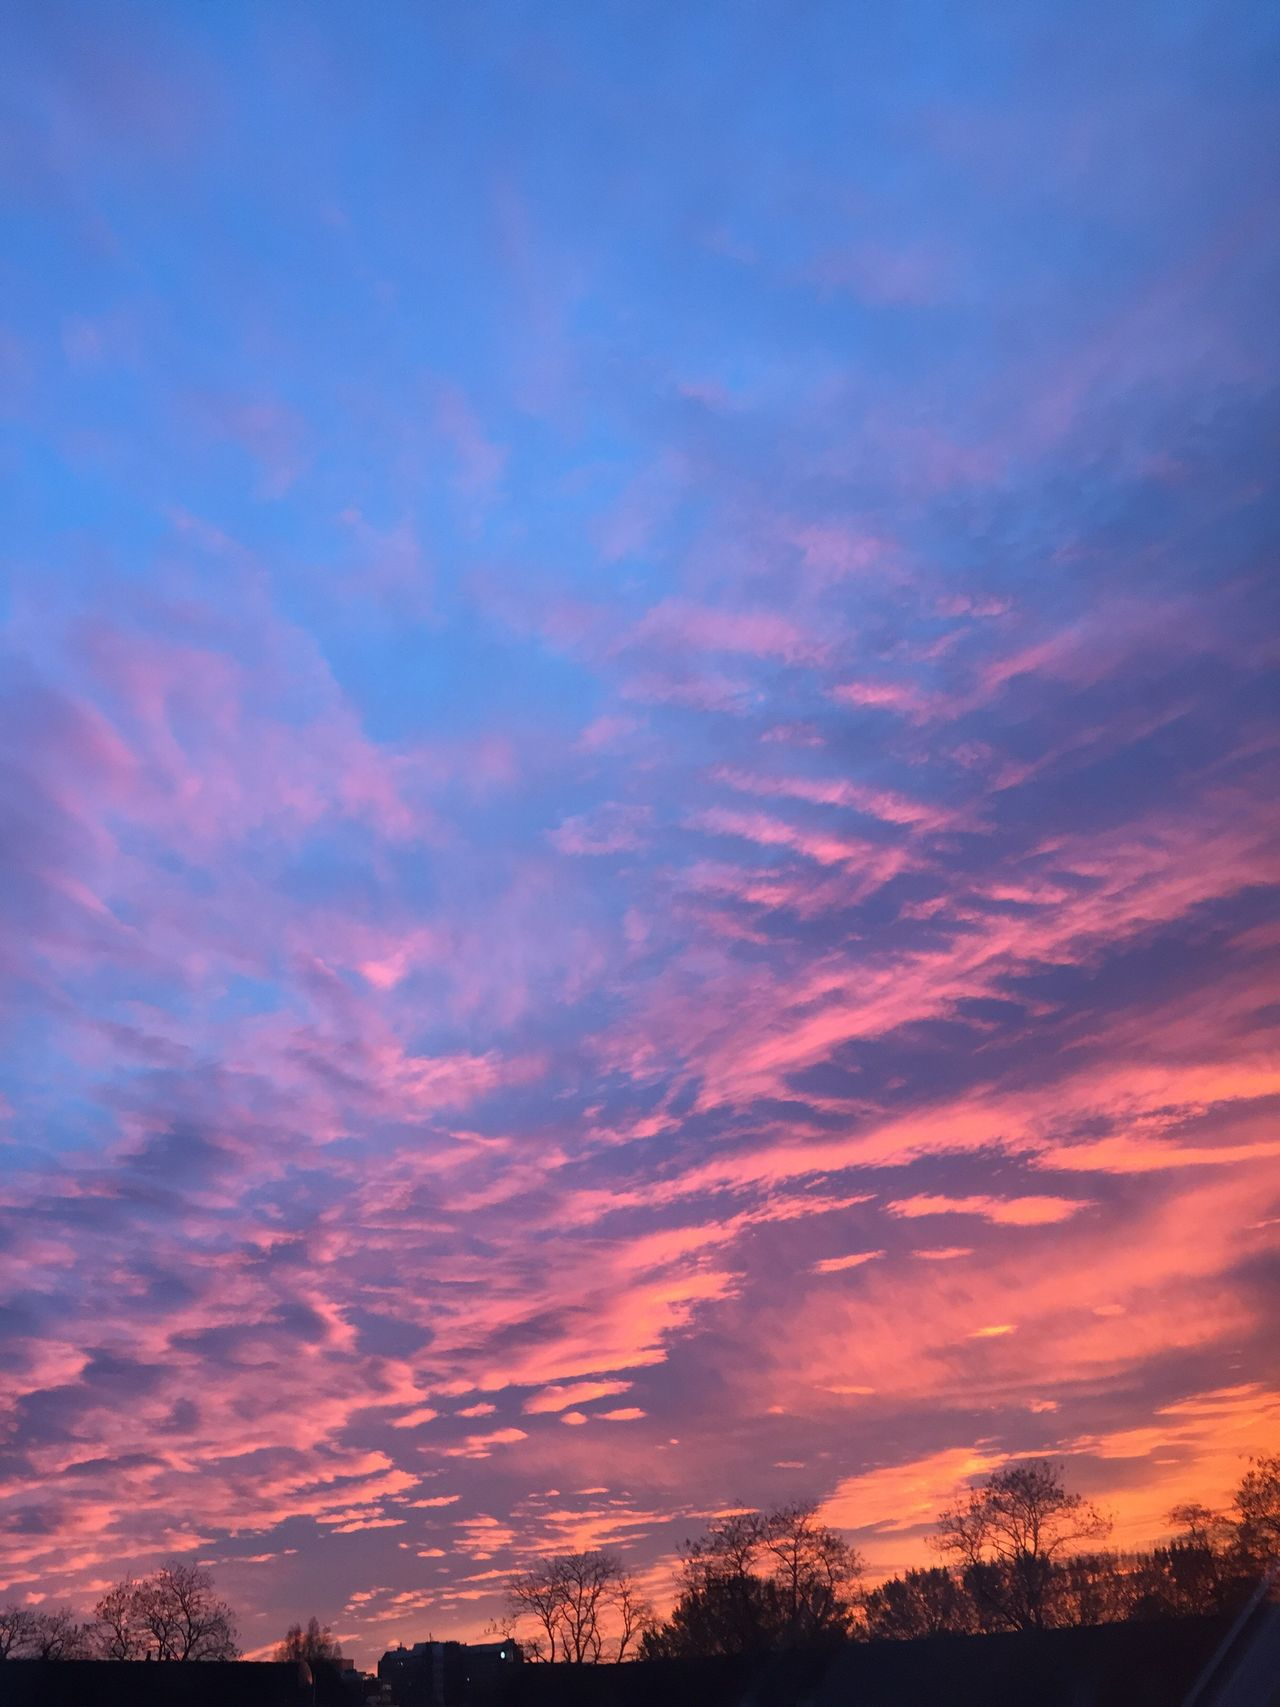 Sunset Beauty In Nature Sky And Clouds TakeoverContrast Sky Photography Nofilter